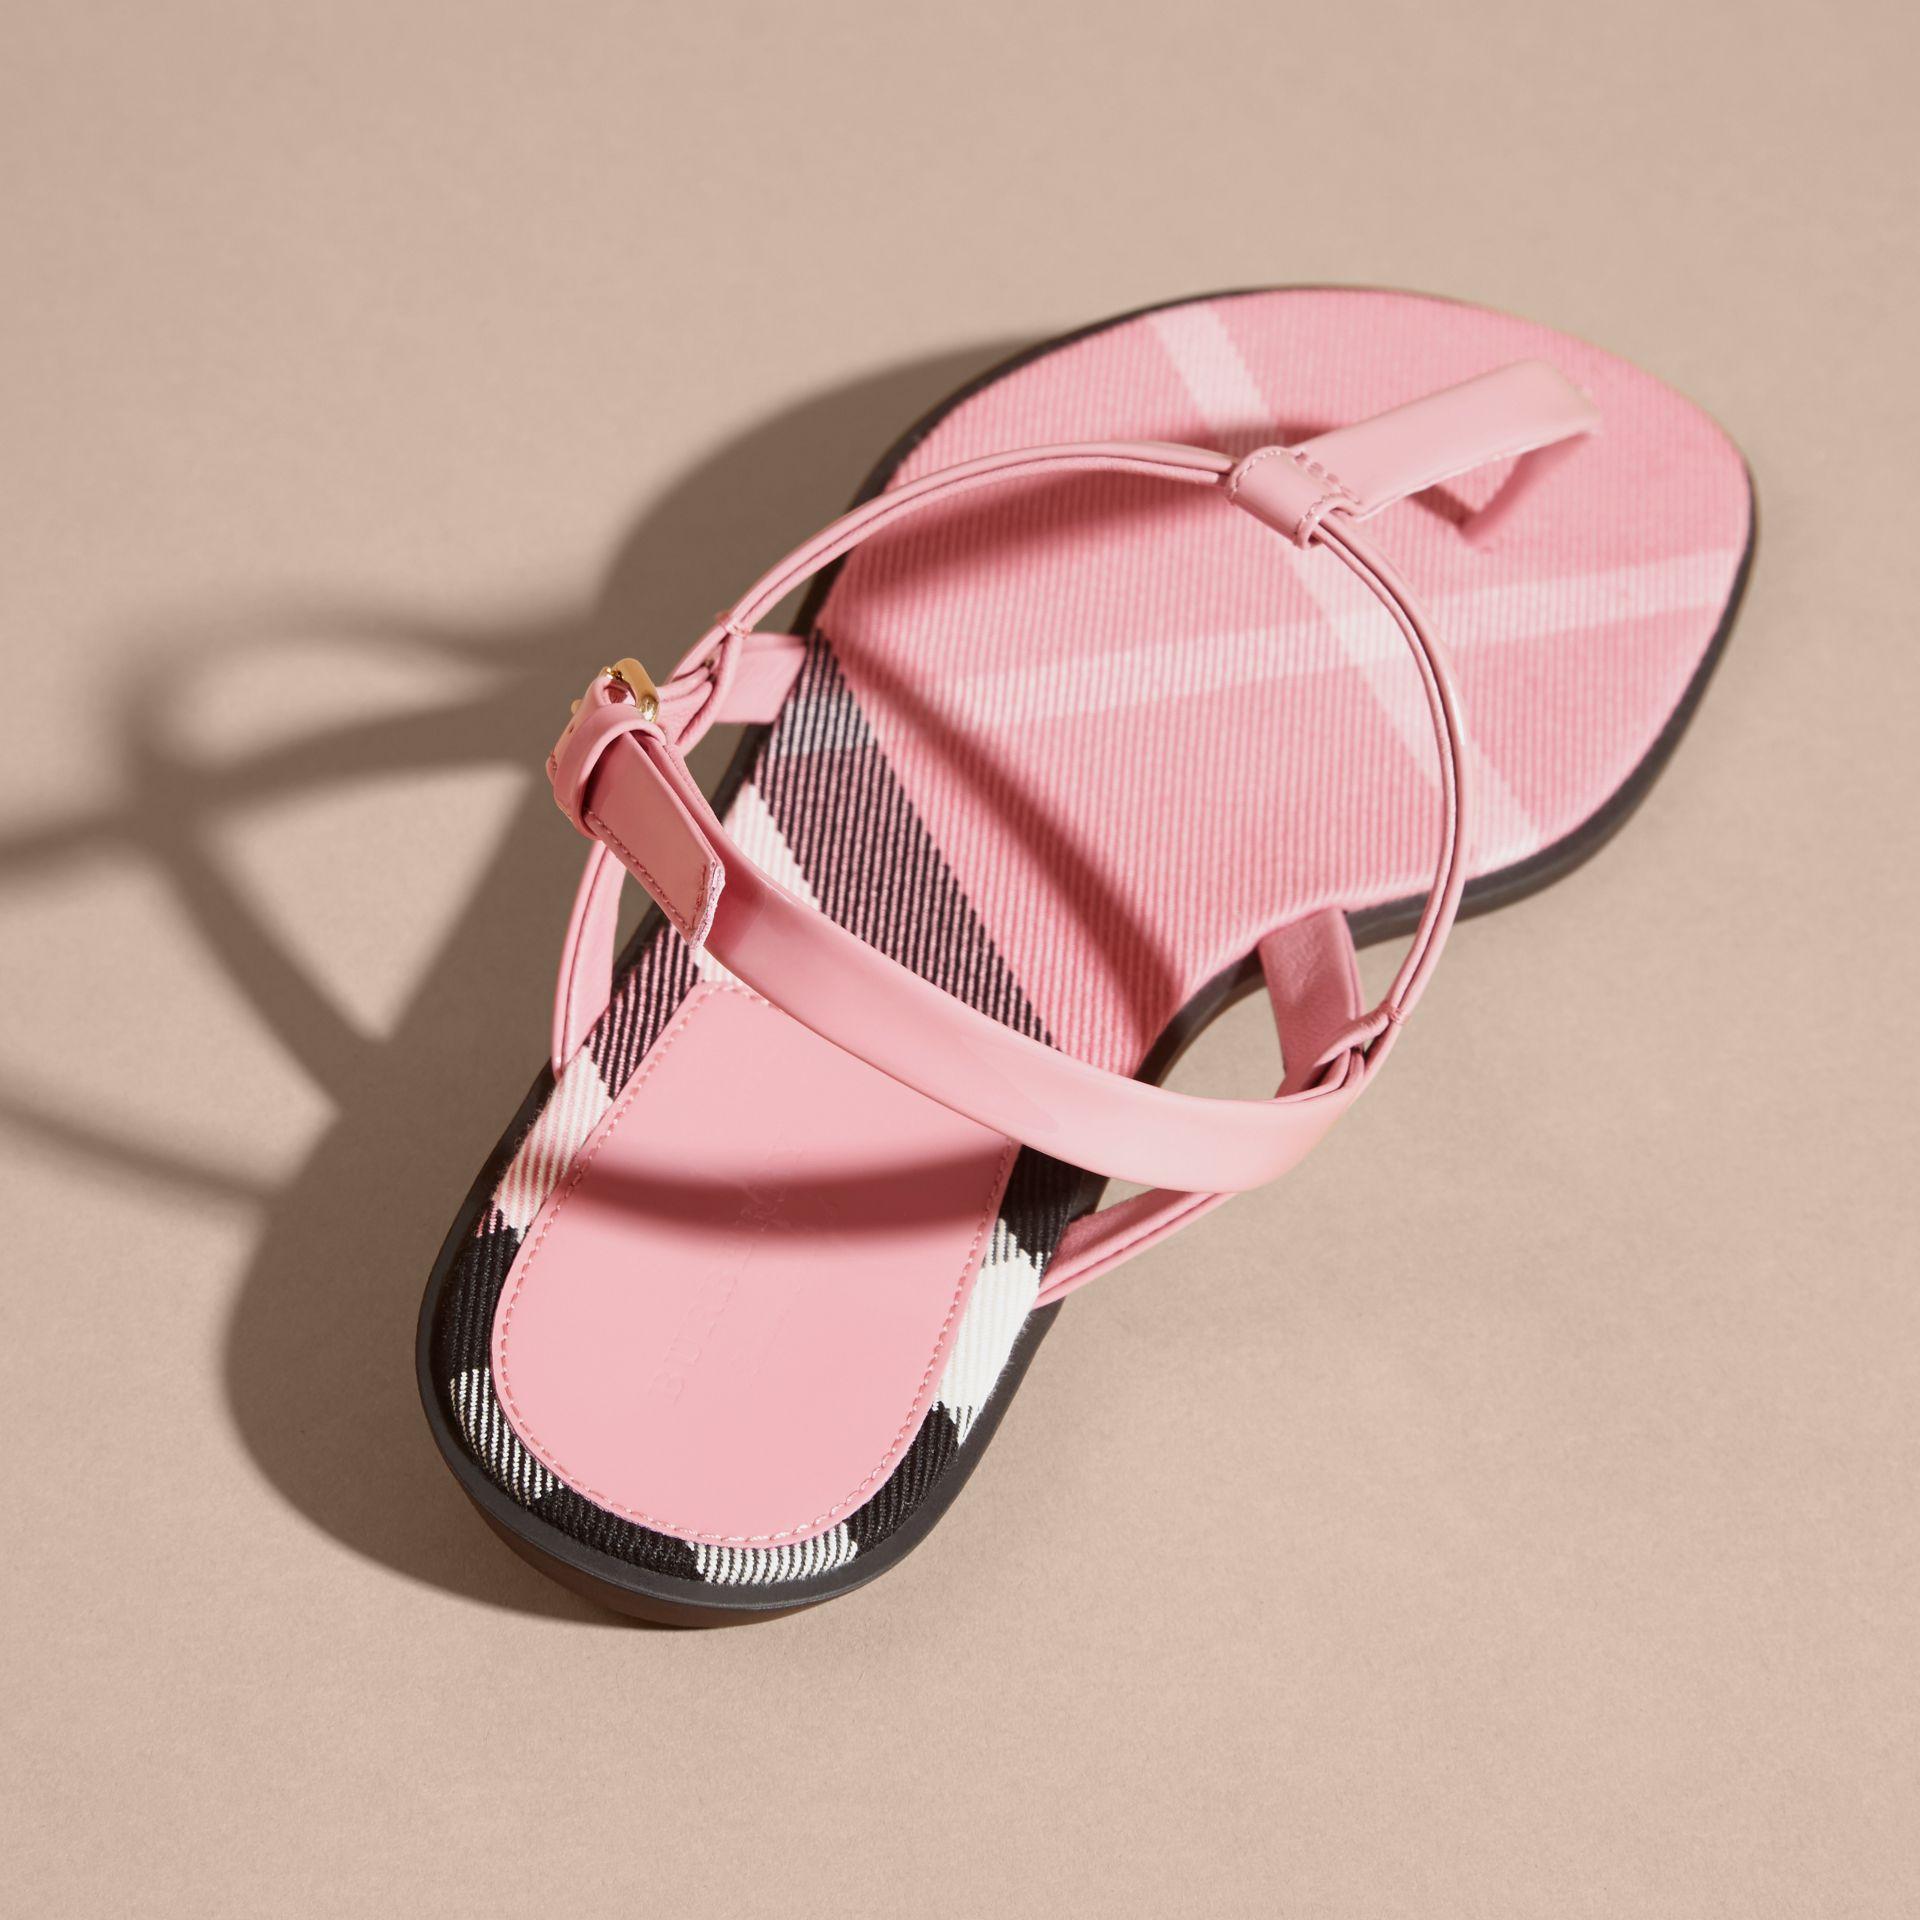 House Check-lined Leather Sandals Berry Pink - gallery image 4